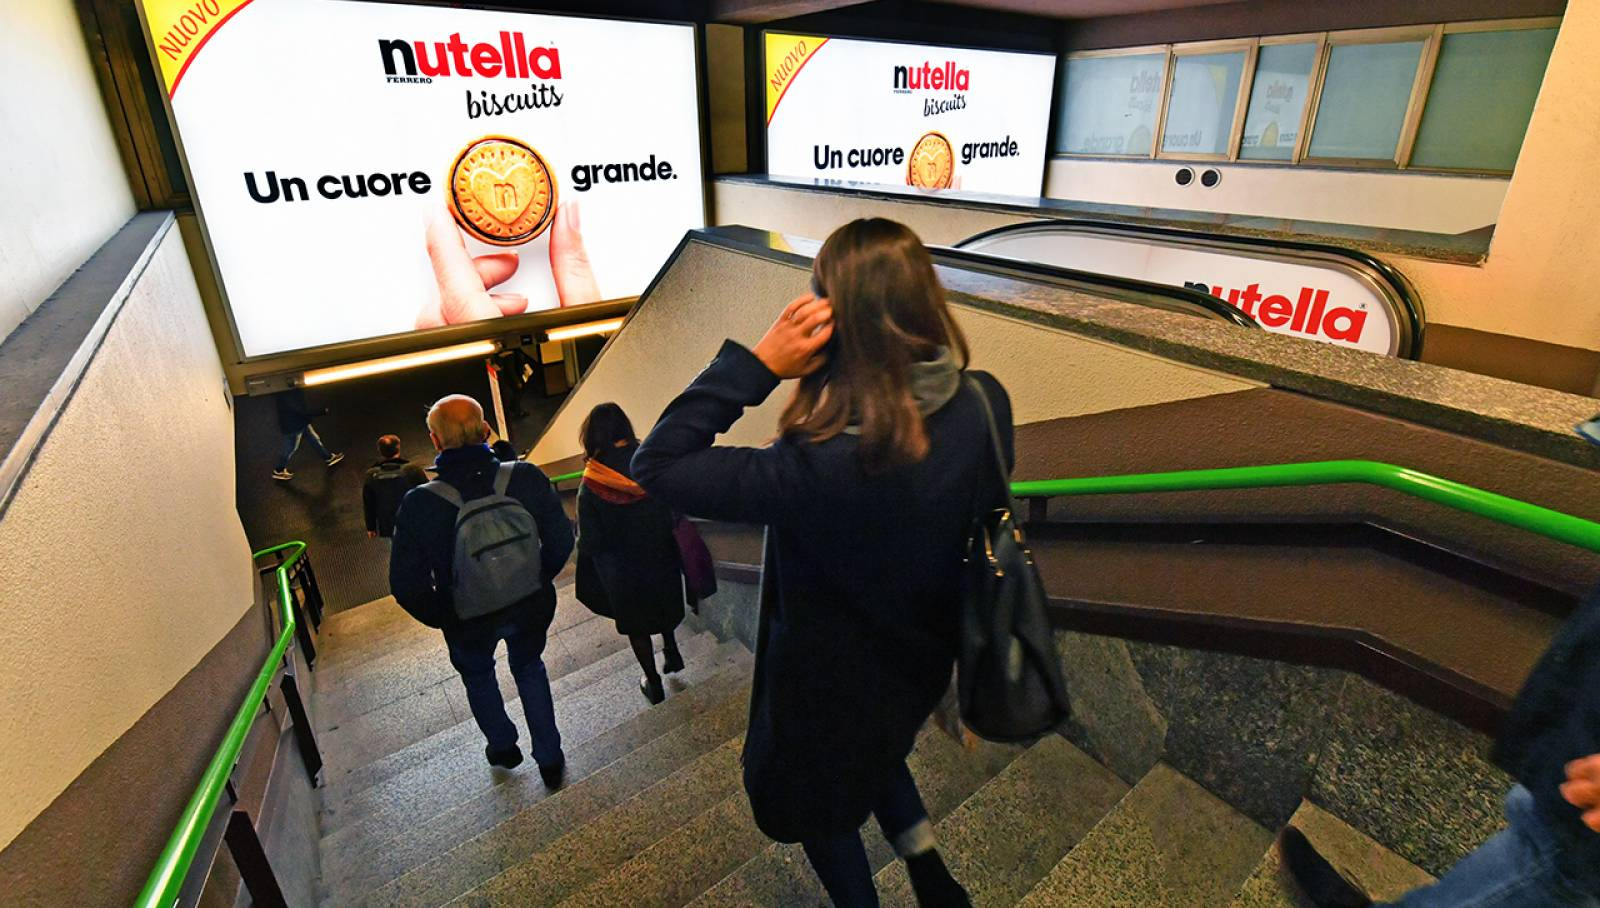 OOH IGPDecaux Milano Station Domination per Ferrero Nutella Biscuits